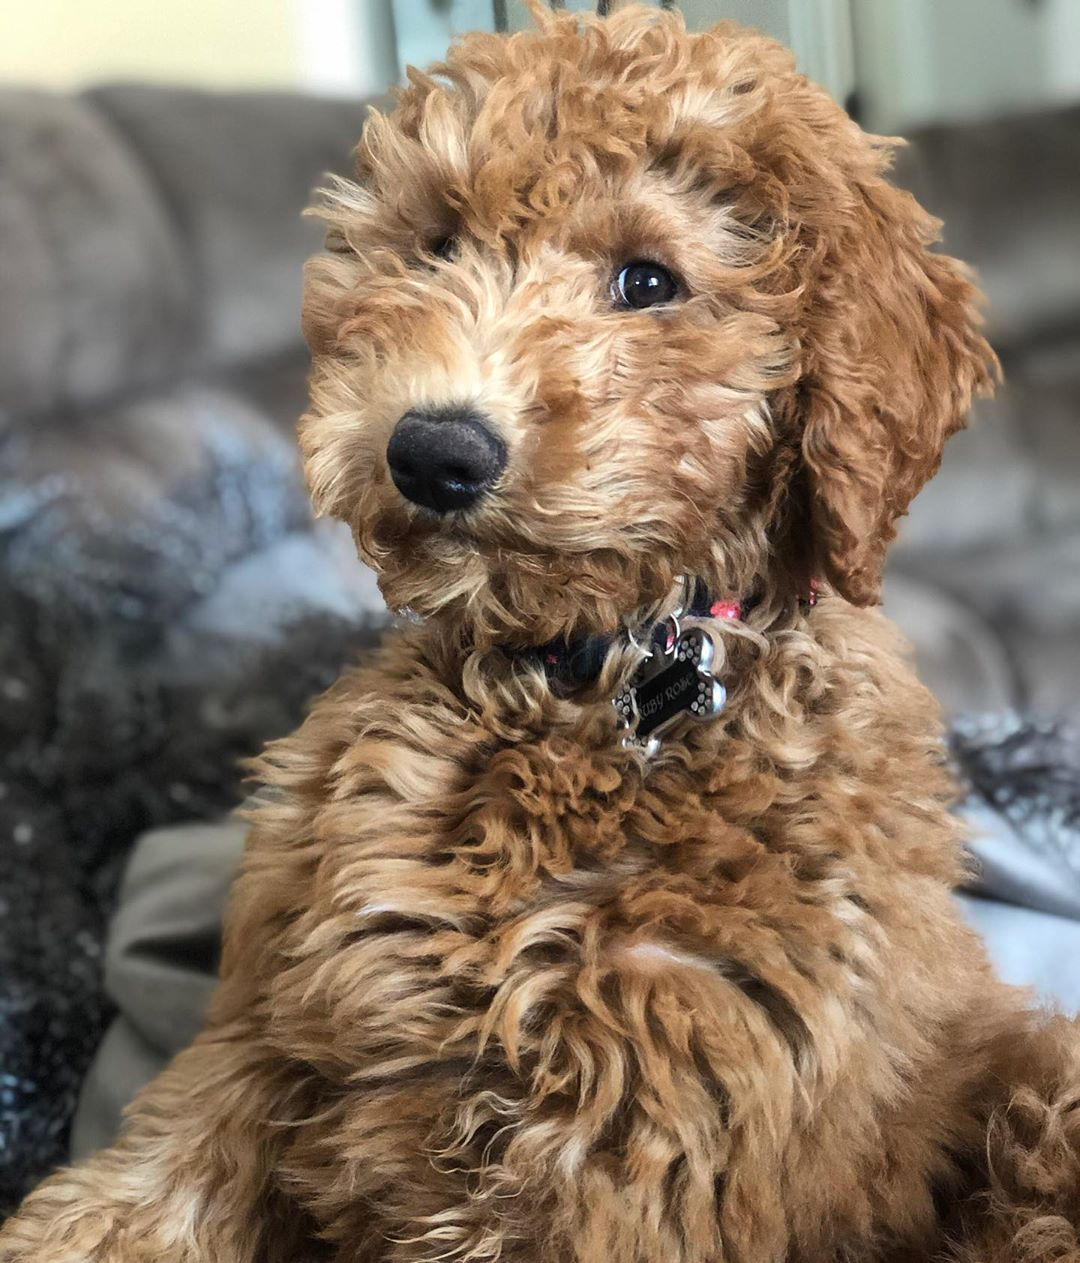 f2b goldendoodle picture